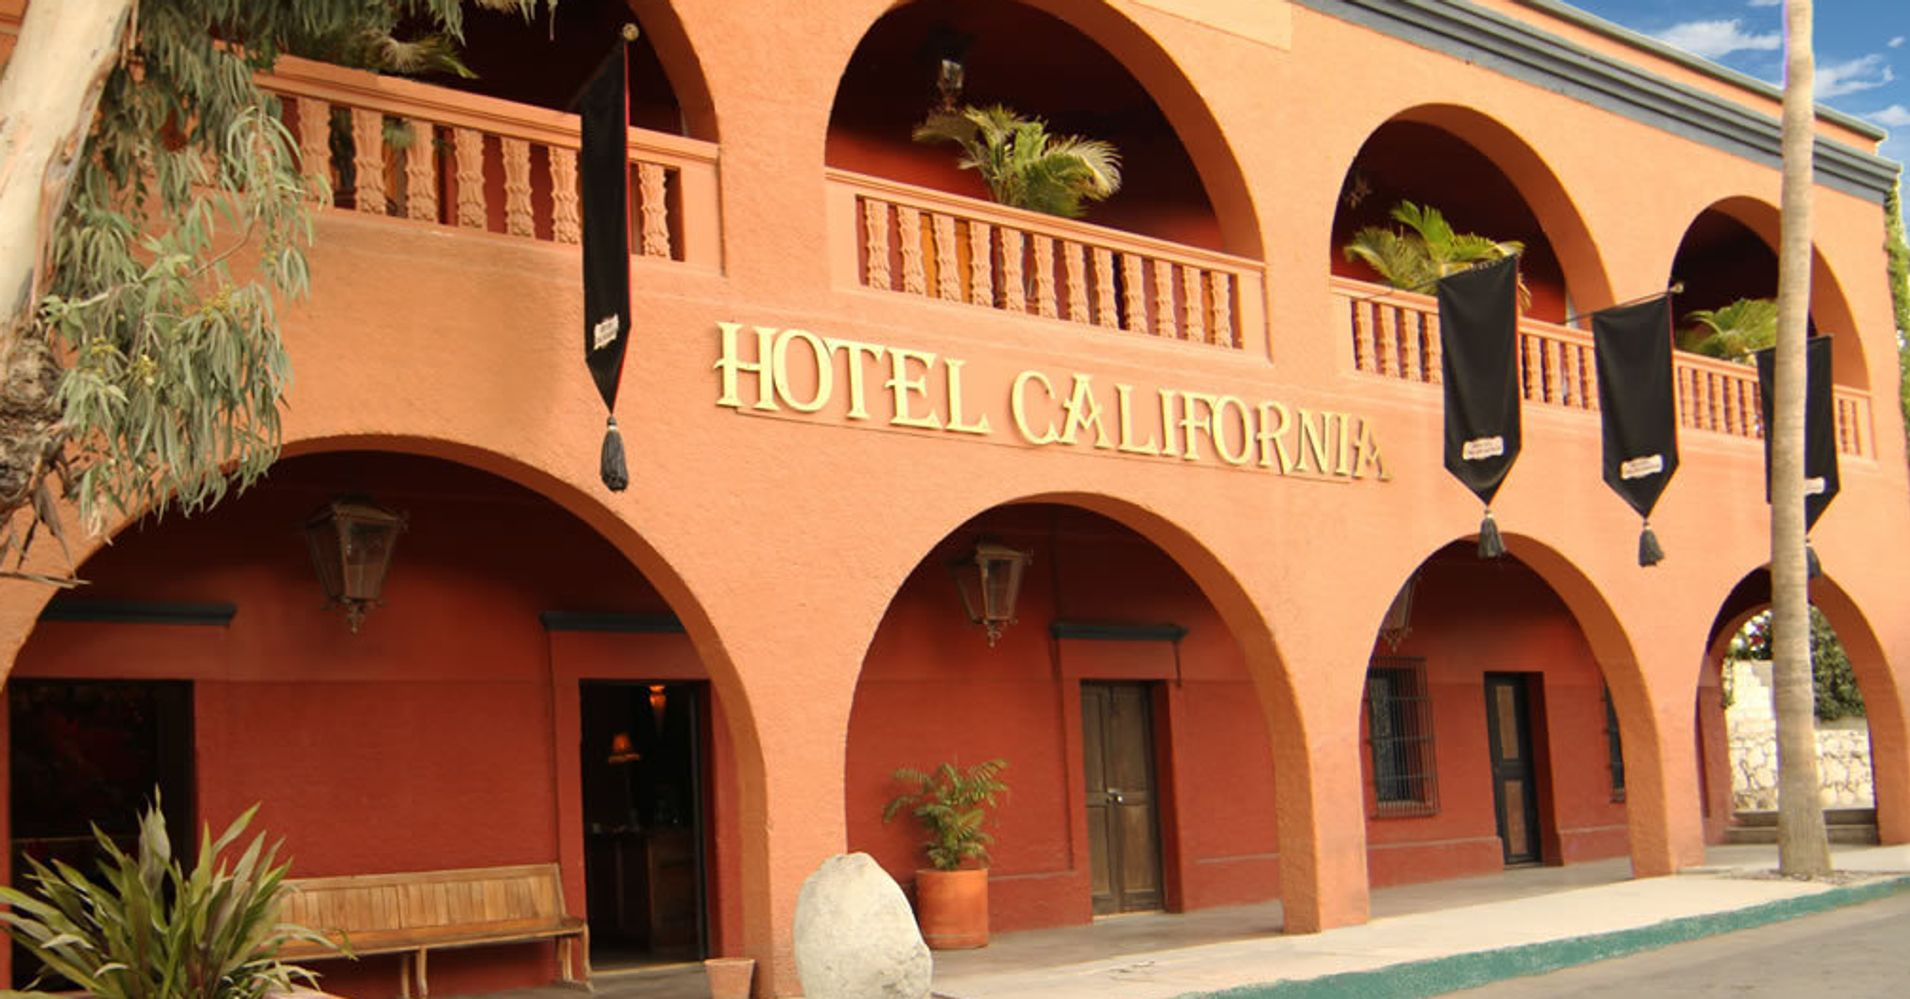 the eagles sue hotel california huffpost. Black Bedroom Furniture Sets. Home Design Ideas